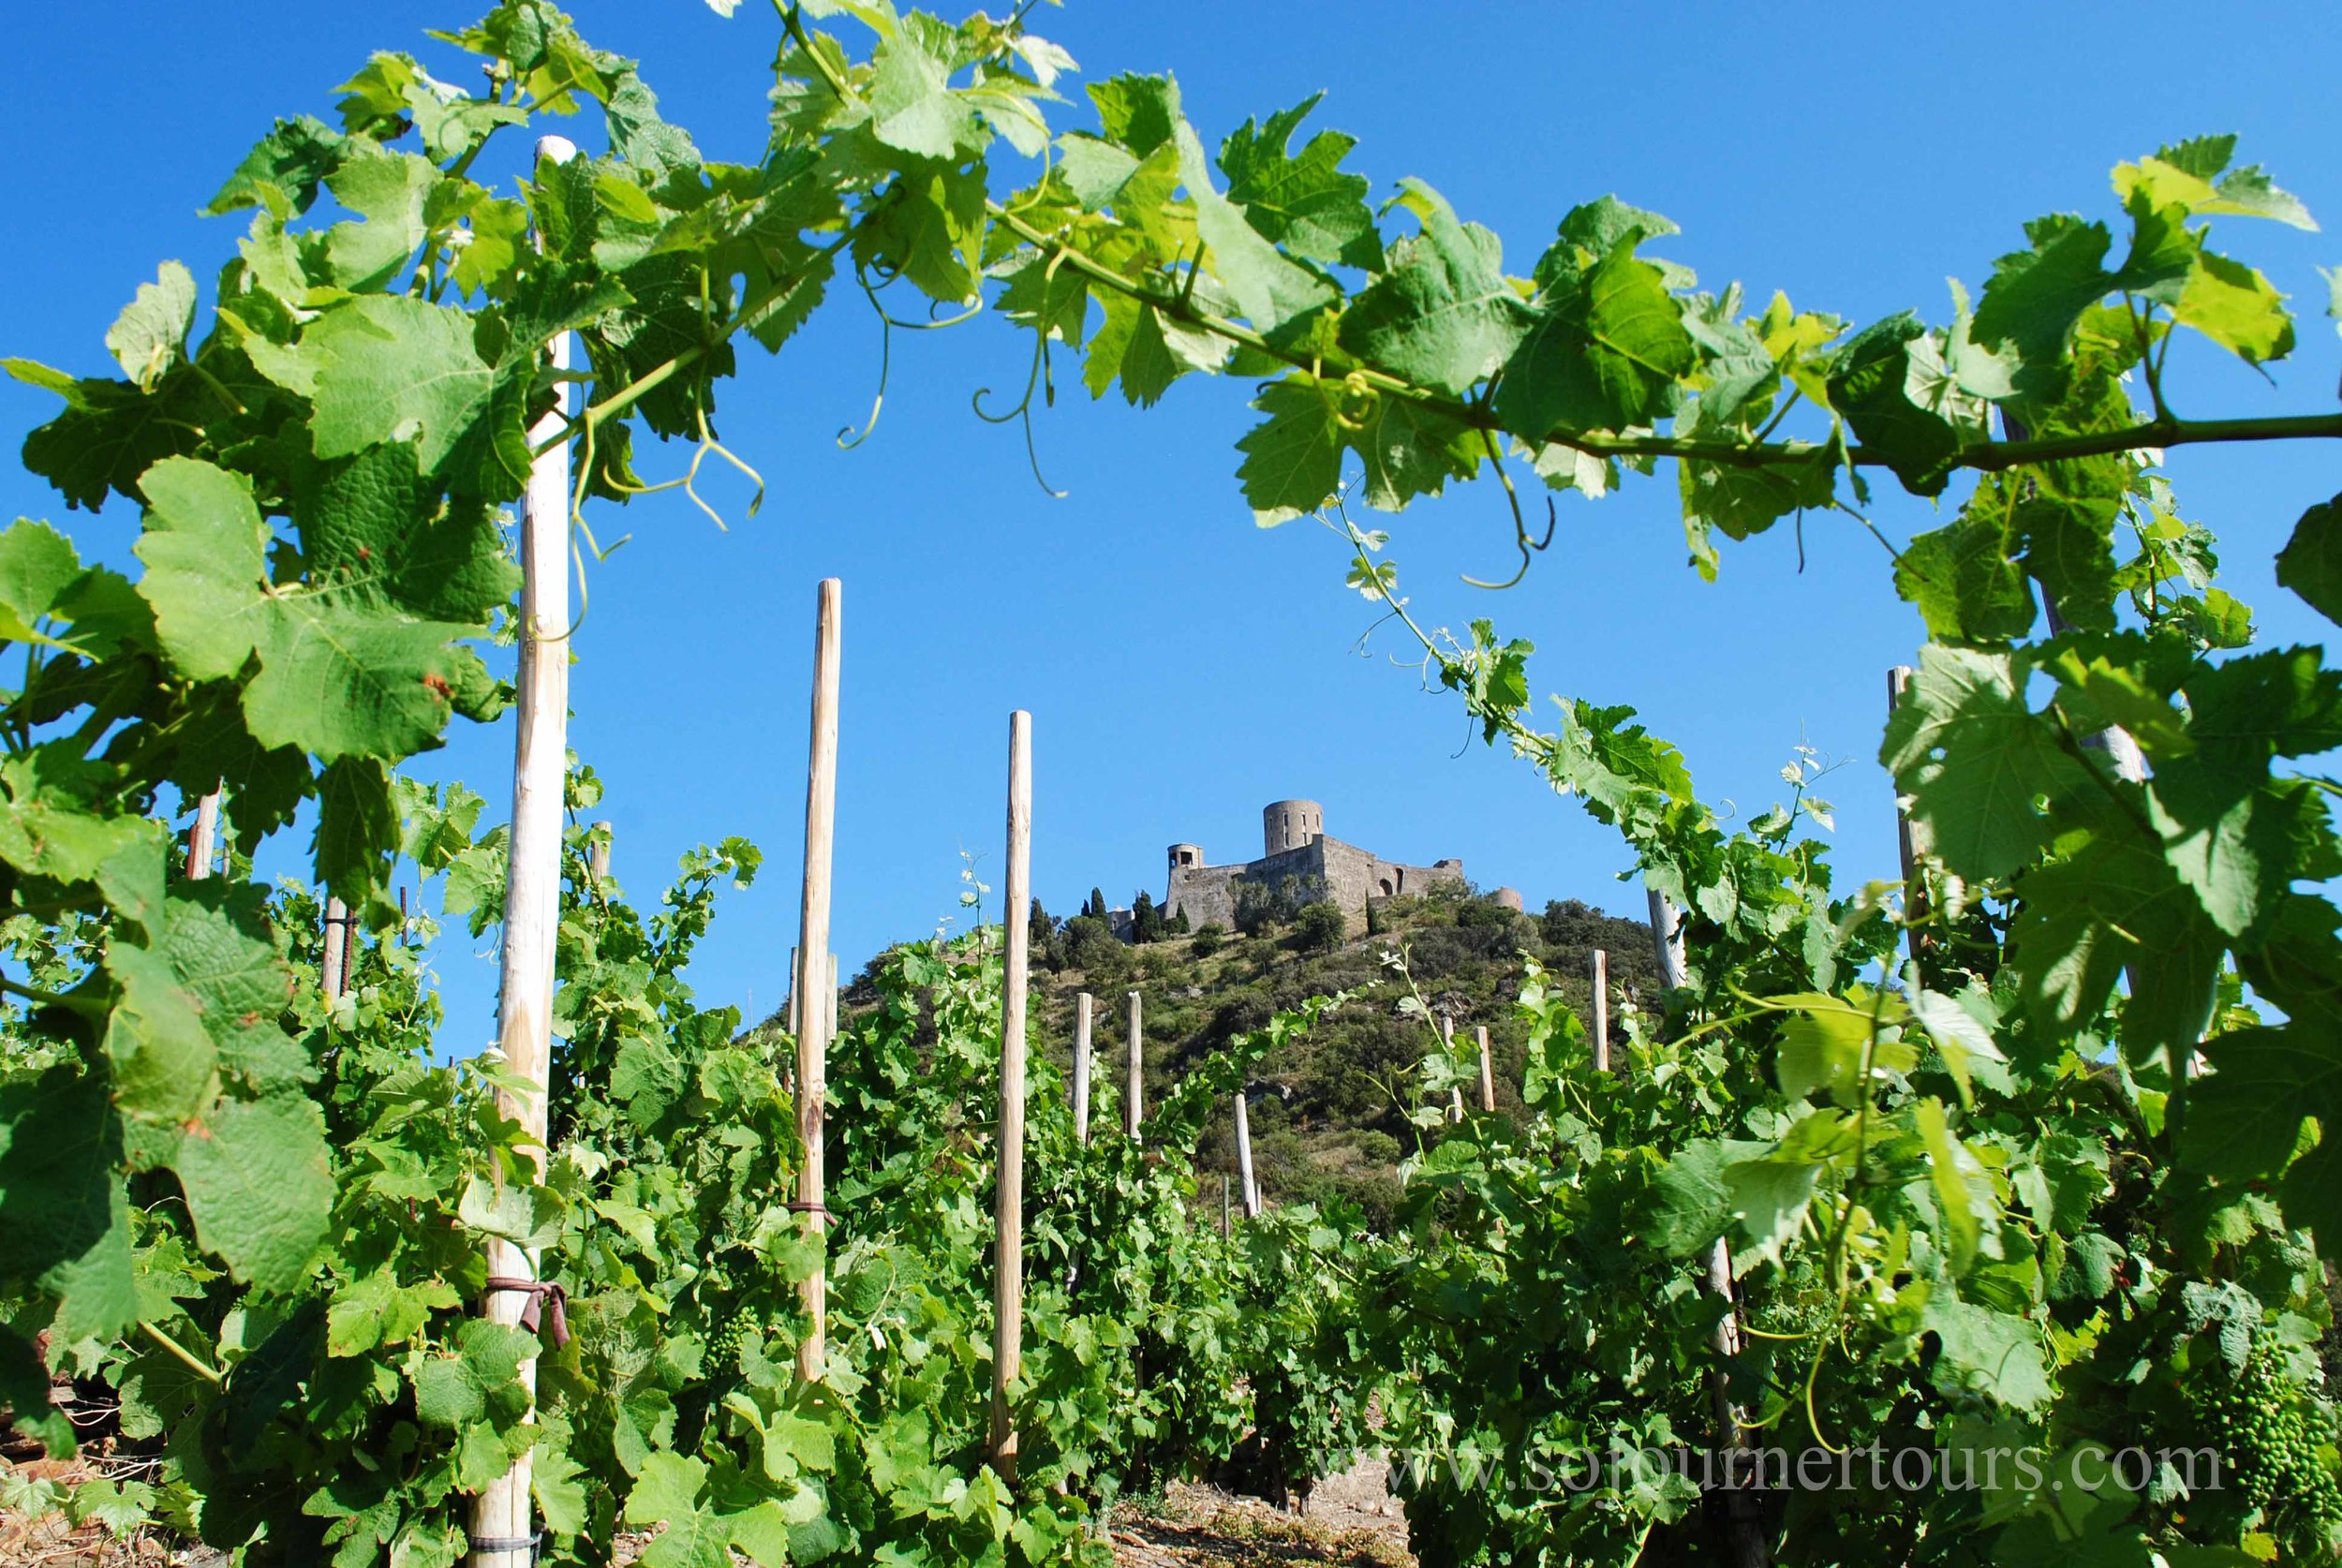 Hiking through the vineyards up to Fort St. Elme.